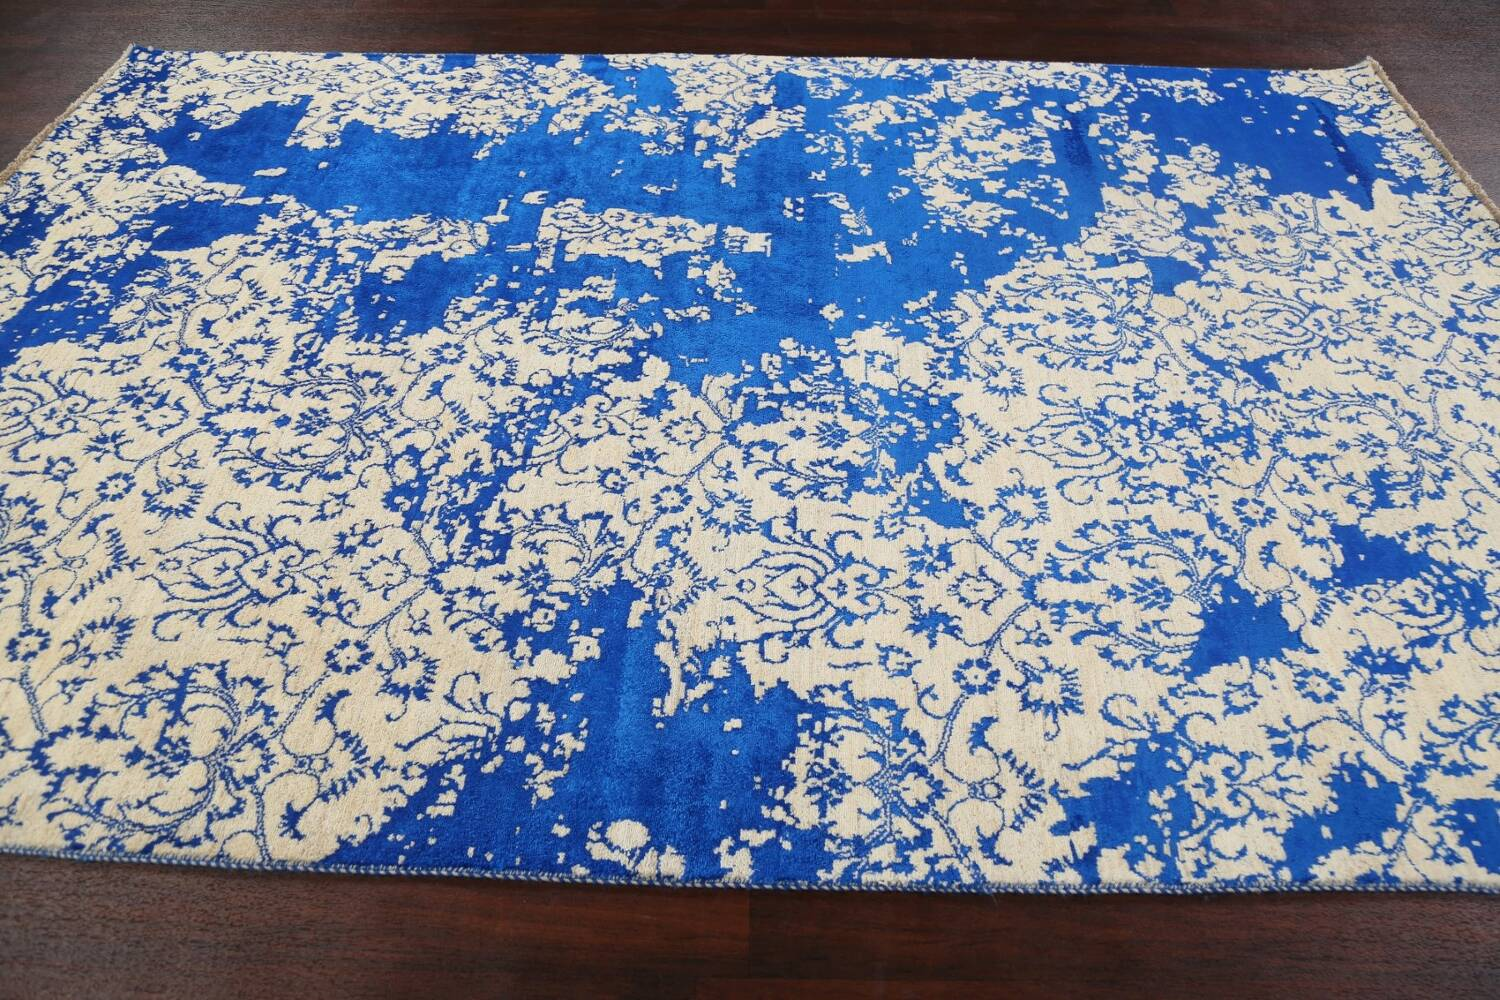 All-Over Distressed Art & Craft Oriental Area Rug 6x9 image 13